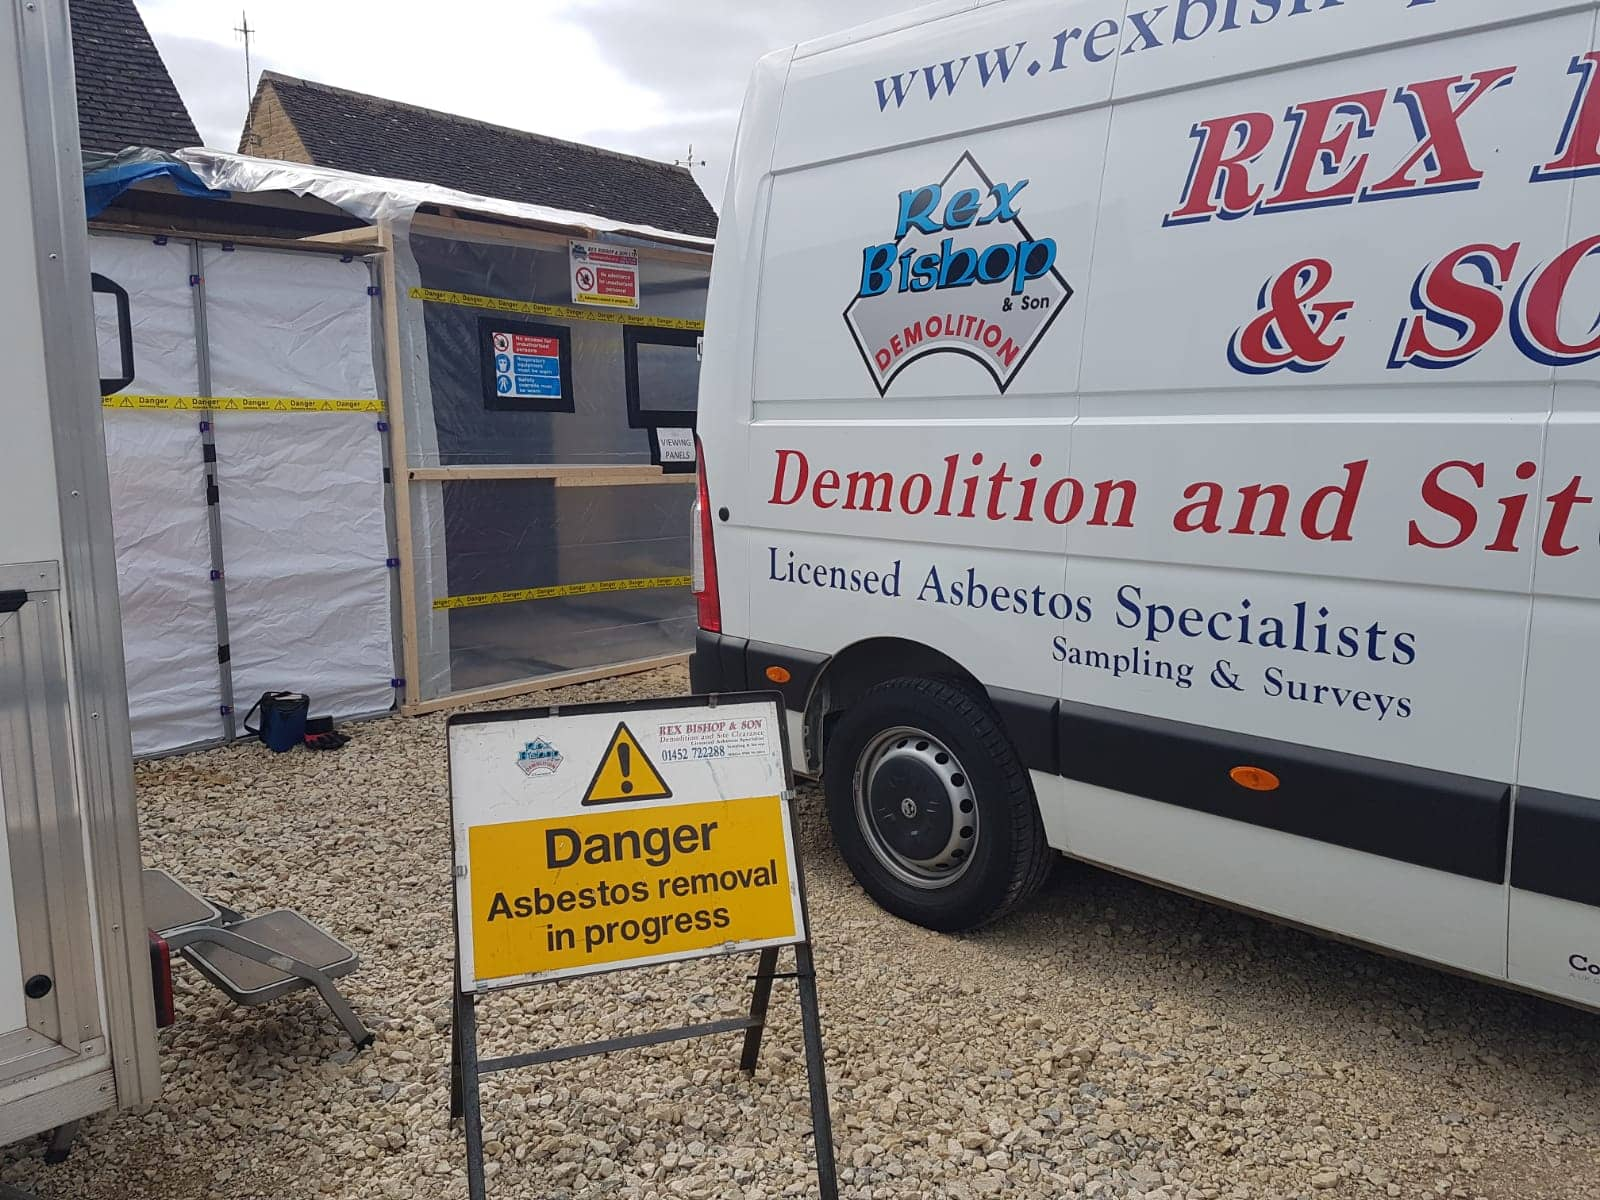 Rex Bishop & Son van outside a garage having asbestos removed